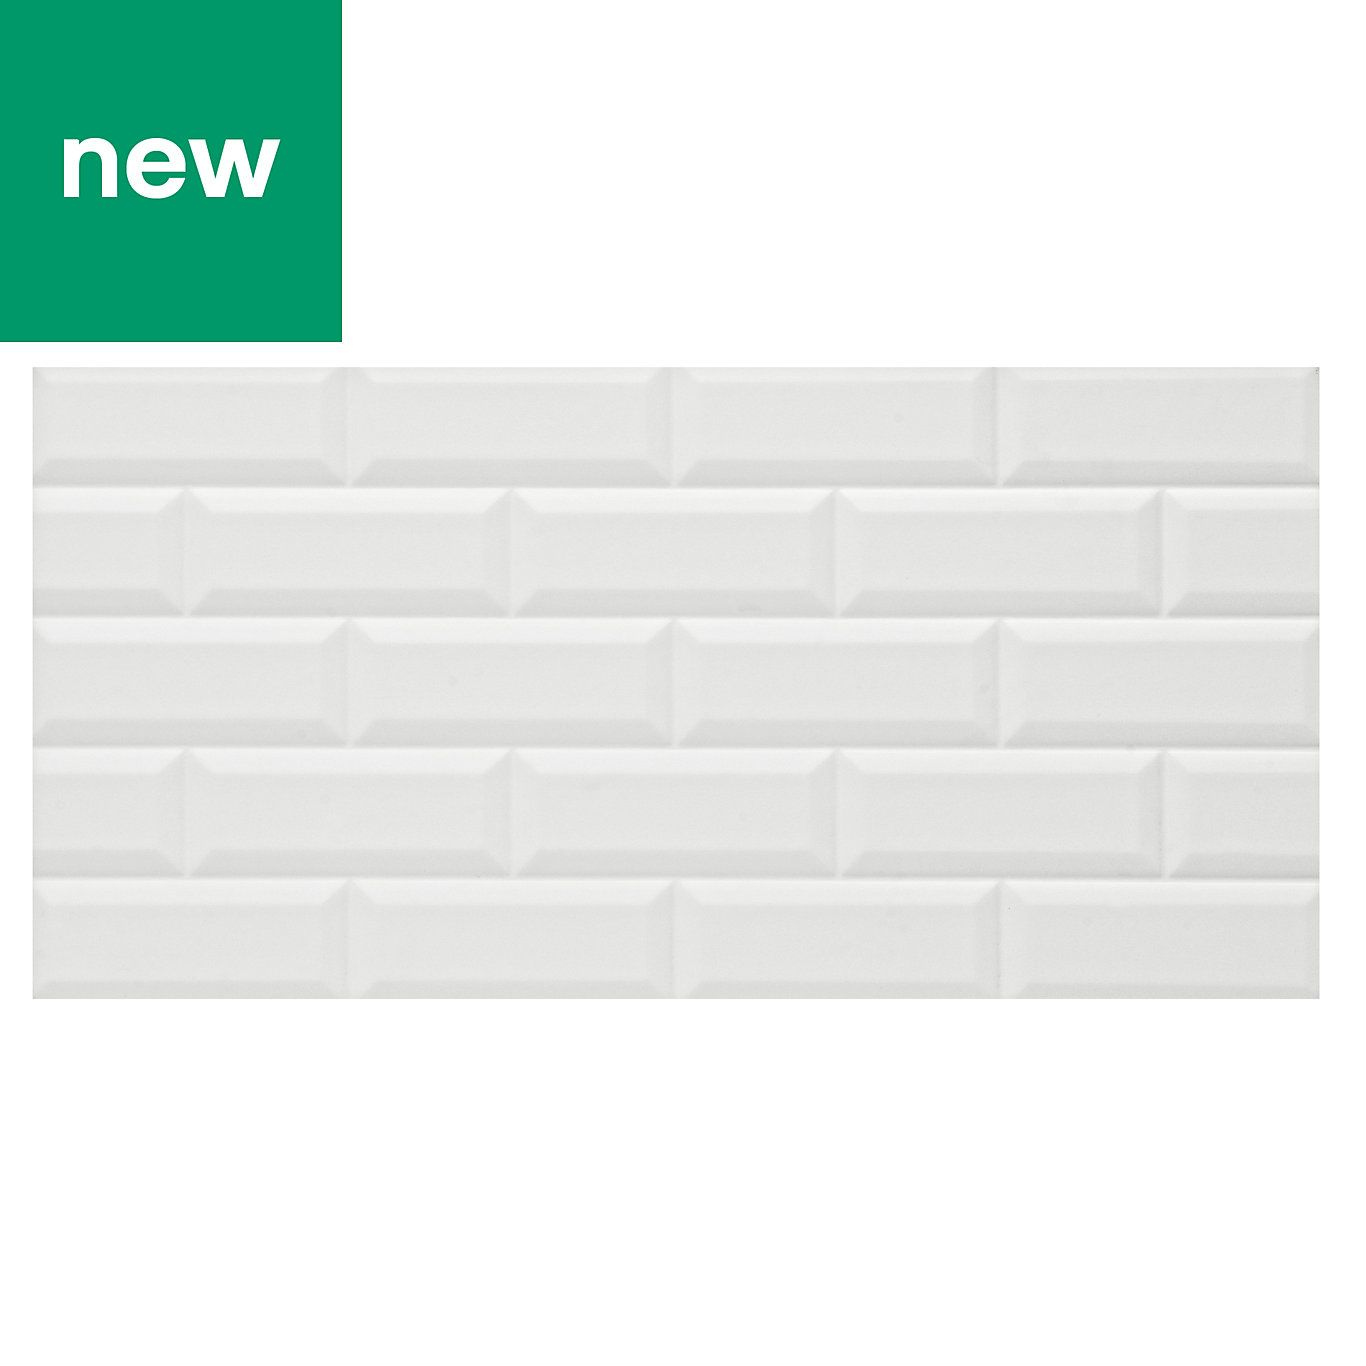 Millennium White Brick Effect Ceramic Wall Tile Pack Of 6 L 600mm W 300mm Ceramic Wall Tiles Wall Tiles White Brick